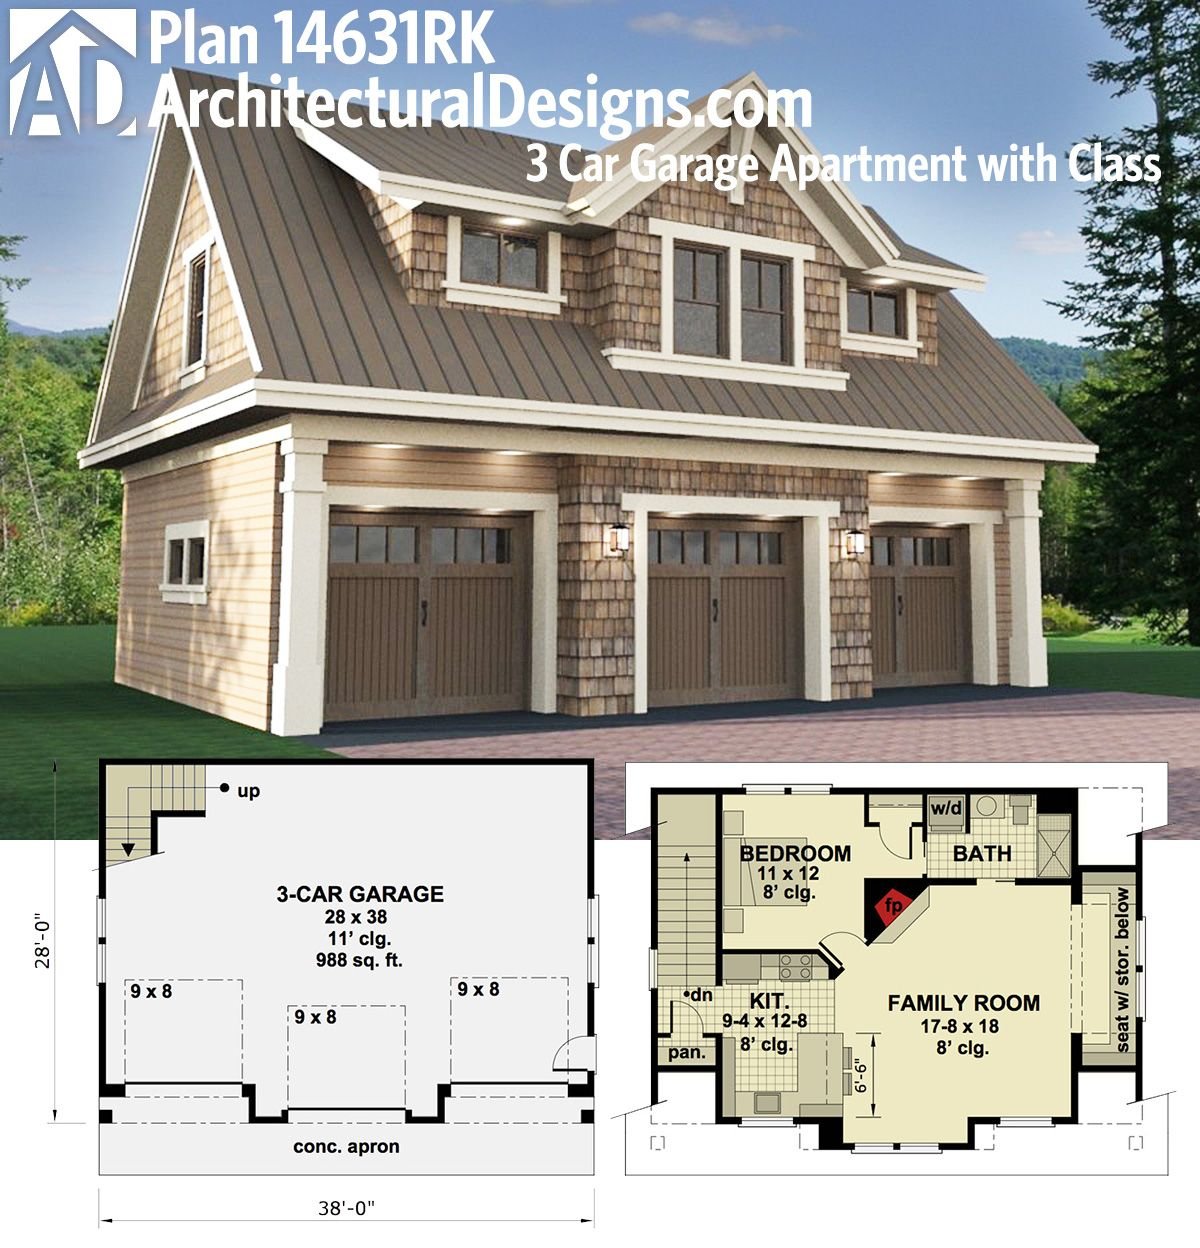 Plan 14631rk 3 Car Garage Apartment With Class Carriage House Plans Garage Apartment Plans Carriage House Garage